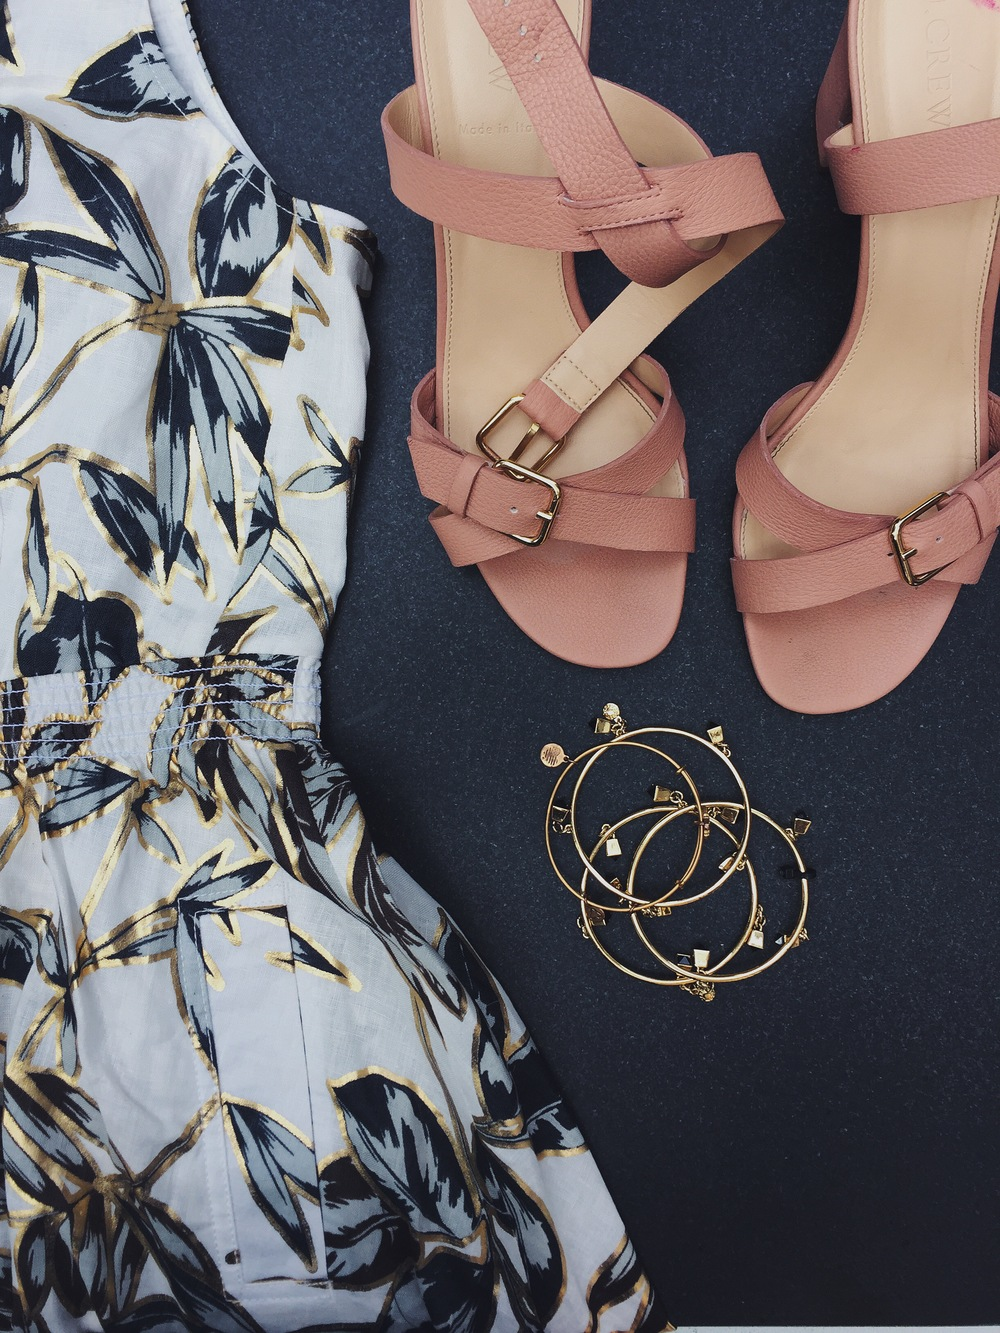 Jcrew Linen Zip Front Dress Gold Foil Leaf Jcrew Buckle Mid Heel Jcrew Factory Chain Link Bracelet Stilla all day Liquid Lipstick That Hayet Rida Plus SIze Blogger 2.jpeg